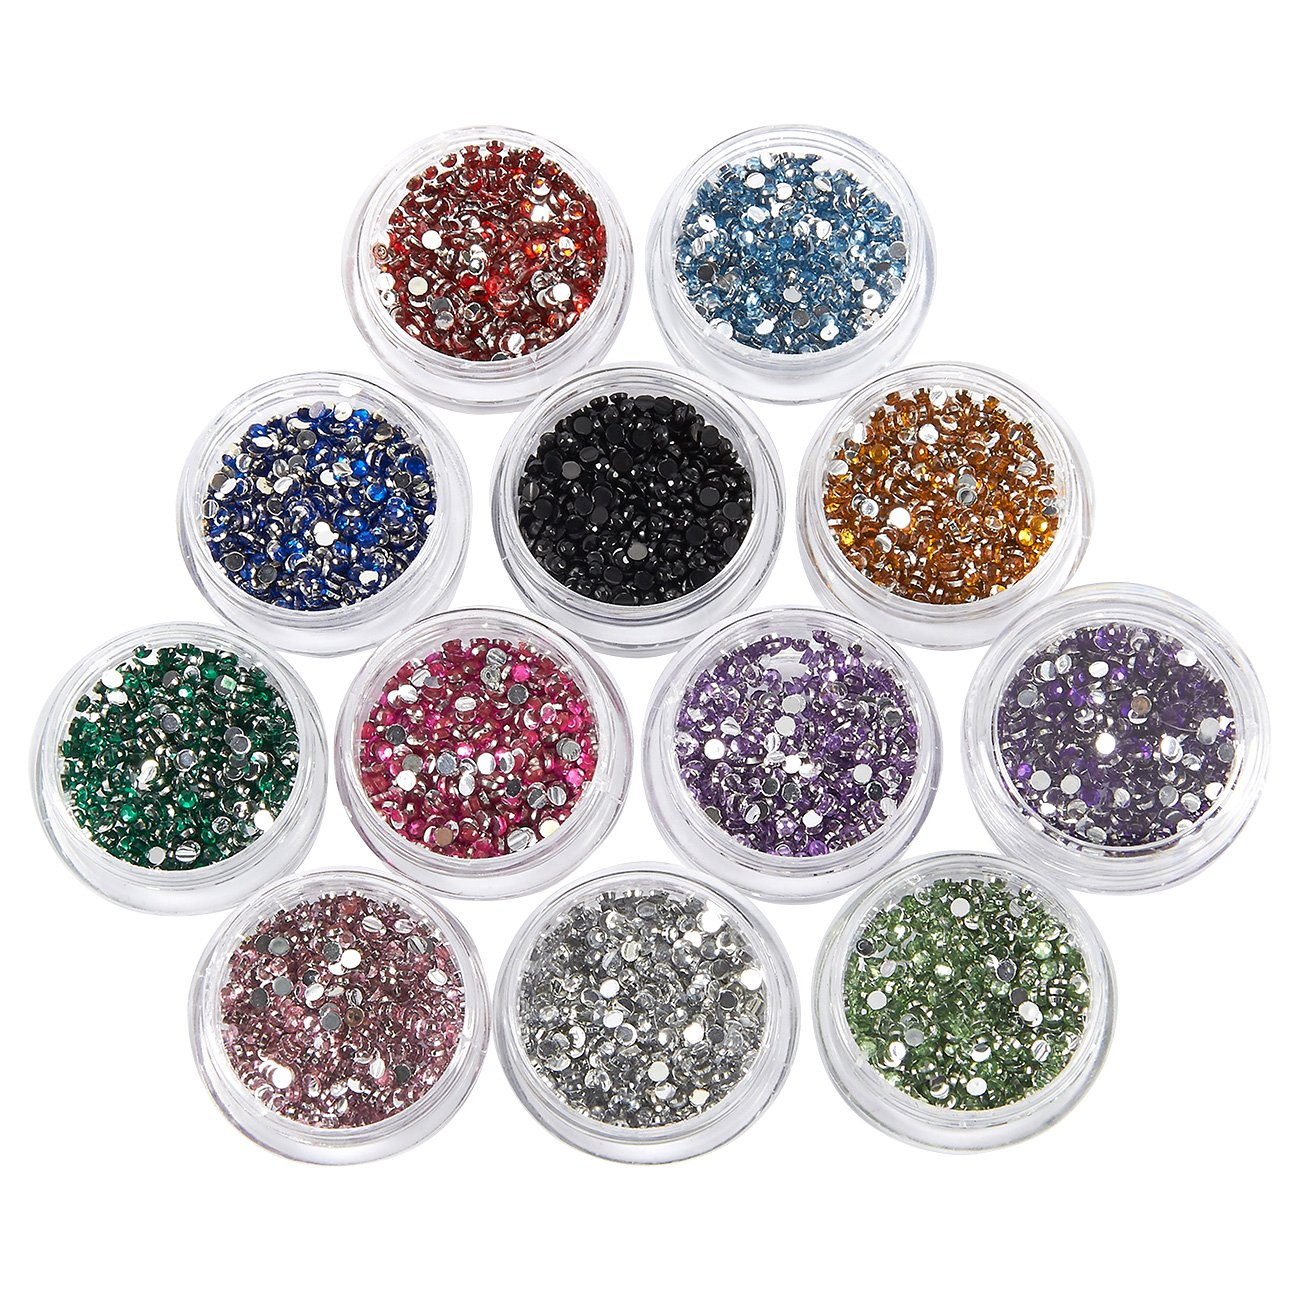 f7d88efe6a Nail Rhinestone - 6000 Piece Nail Crystal Gems, Glitter Nail Jewels, Nail  Art Accessories for Decorations, Makeup, DIY, and Crafts, 12 Colors